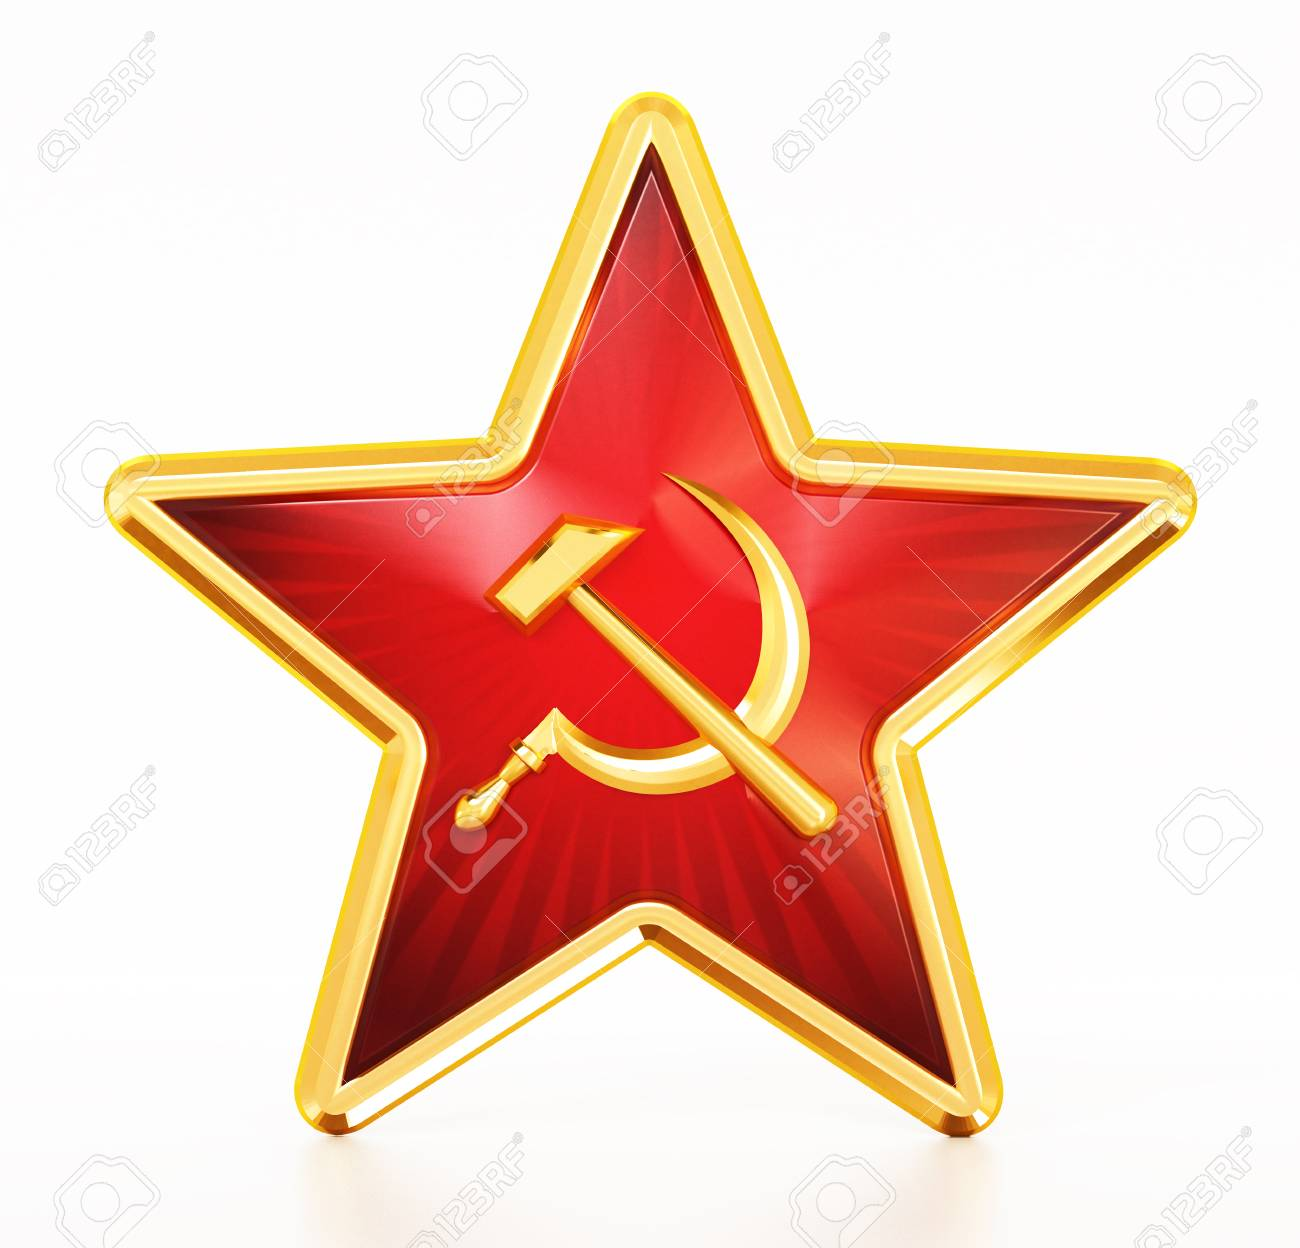 Communist Symbols Hammer And Sickle On Red Star. 3D Illustration. Stock Photo, Picture And Royalty Free Image. Image 103510125.